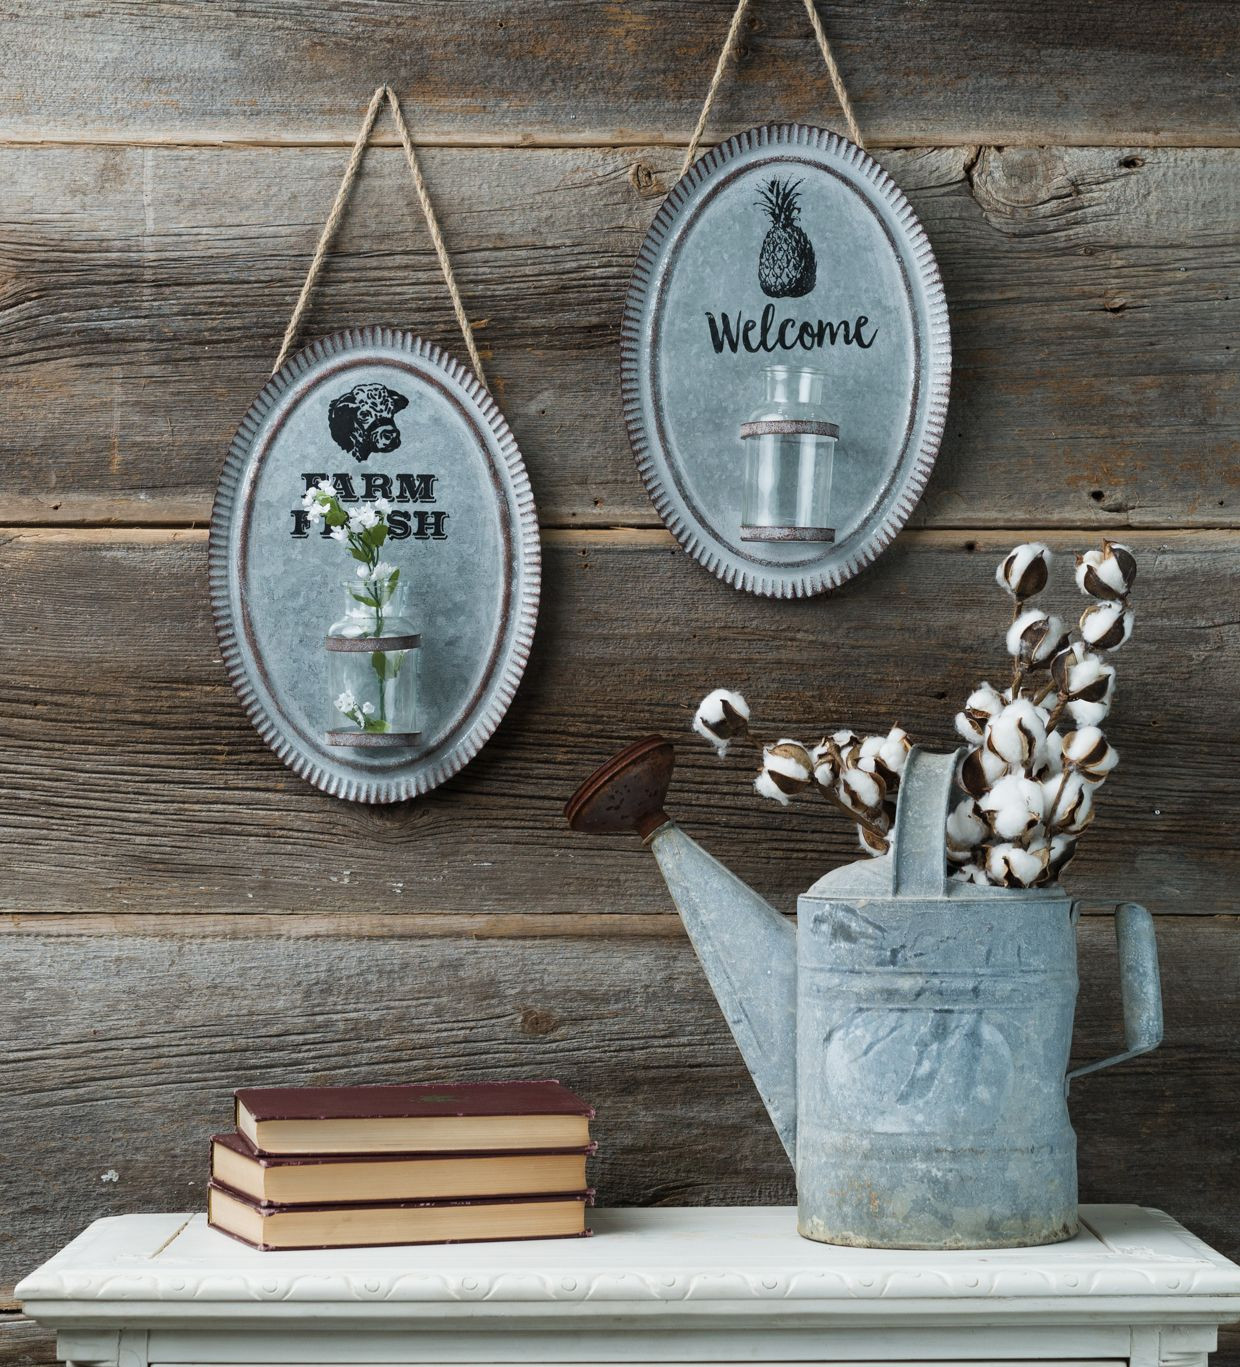 Farmhouse Metal Wall Vase Of Bring that Vintage Farmhouse Look Home with One Of Our Galvanized Intended for Bring that Vintage Farmhouse Look Home with One Of Our Galvanized Metal Wall Signs and Vases Vintage Farmhouse Home Decor Country Rustic